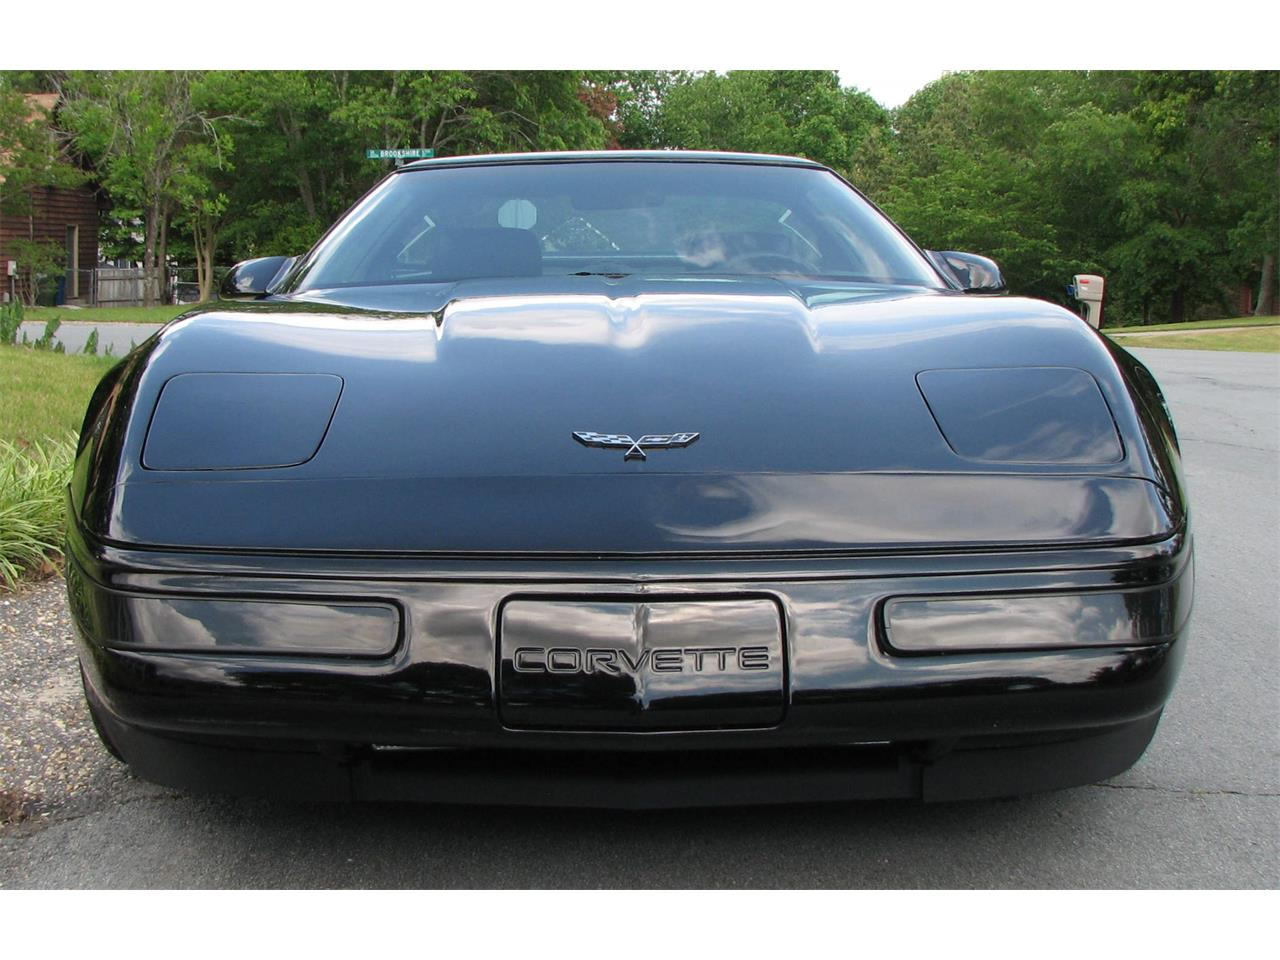 Large Picture of '91 Chevrolet Corvette located in North Carolina Offered by a Private Seller - L16X